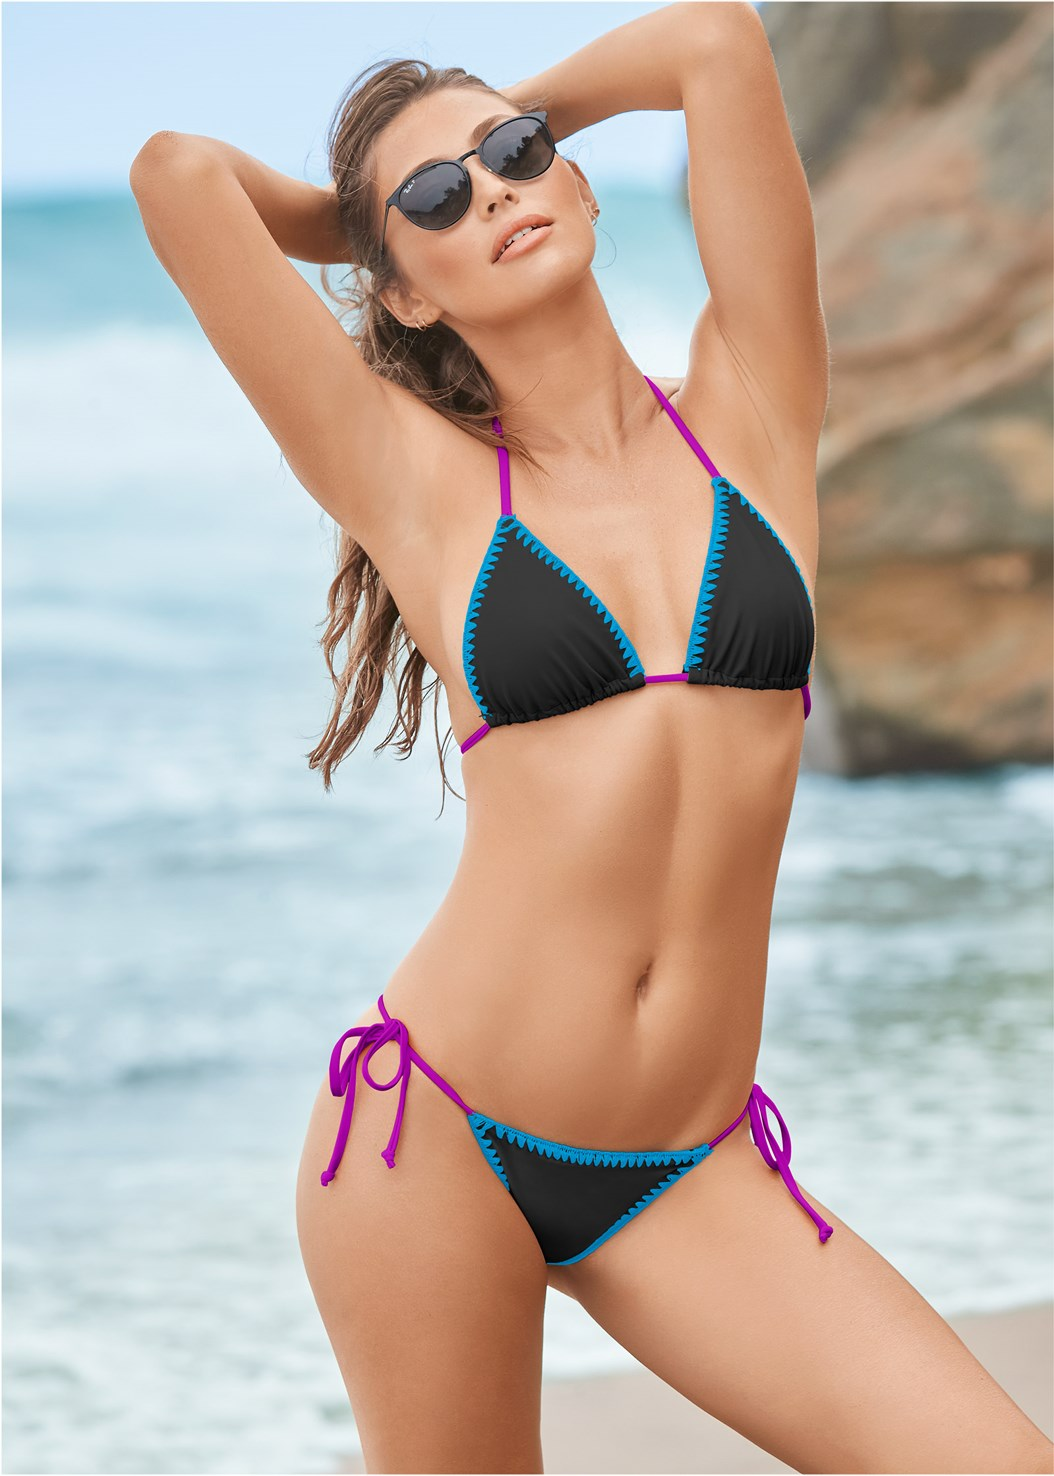 Reversible Triangle Top,Reversible String Bottom,Lattice Side Bikini Bottom